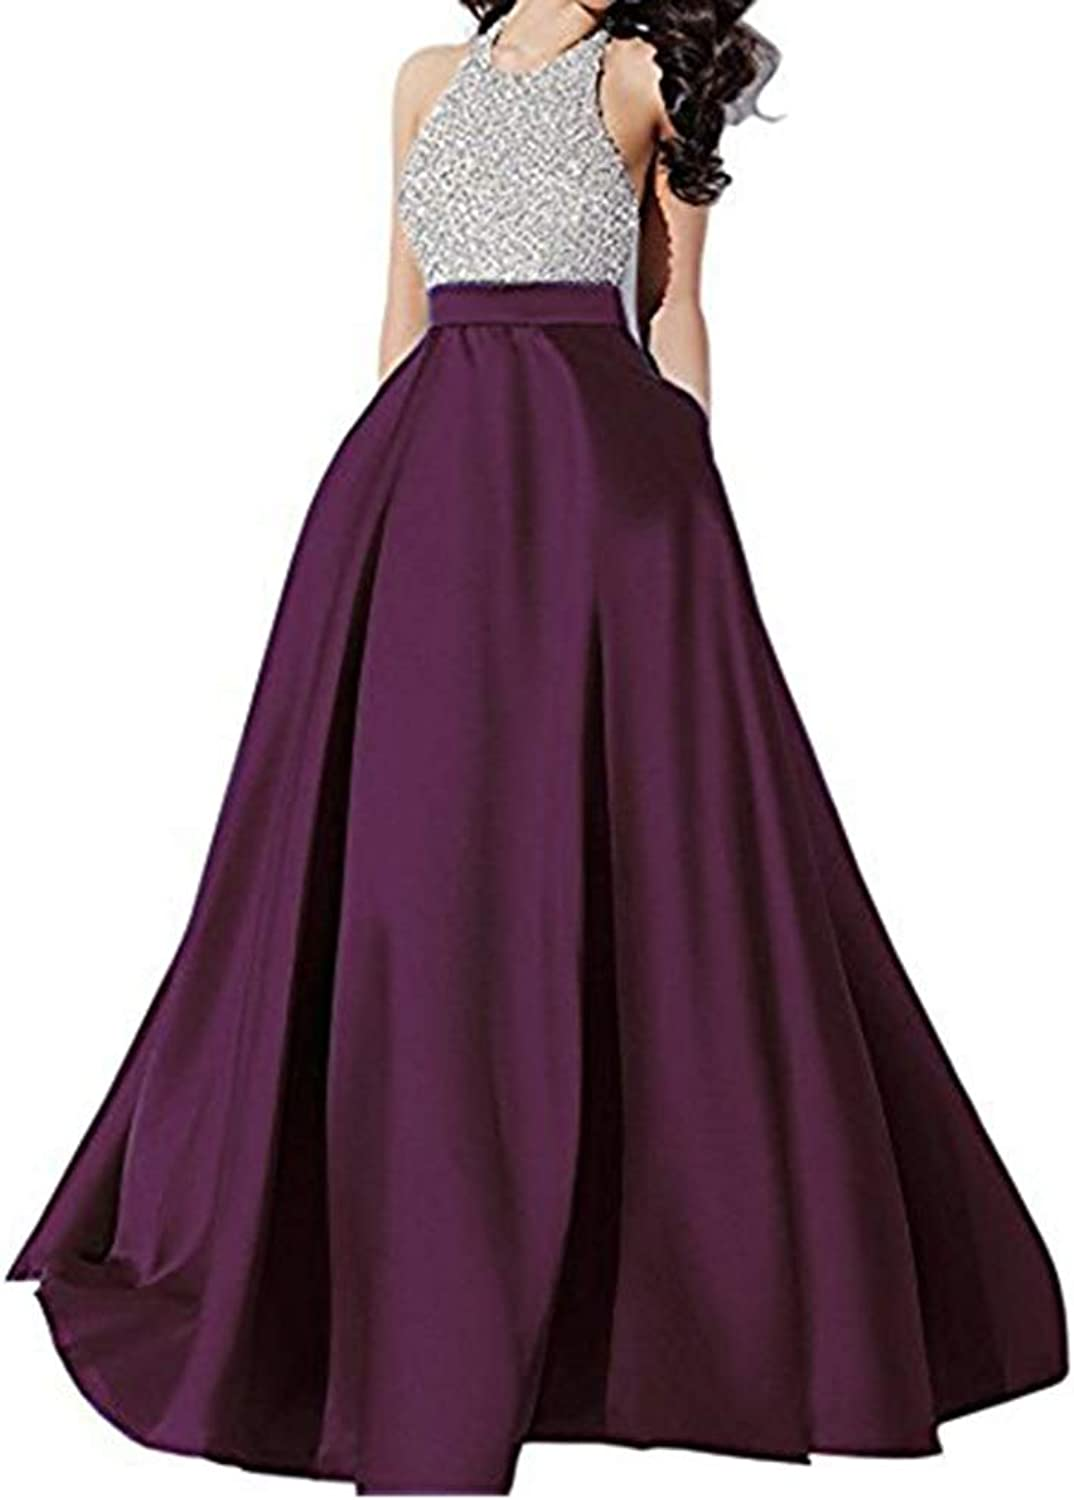 Alilith.Z Women's Illusion Neckline Appliques Lace Sequins Evening Dresses Mermaid